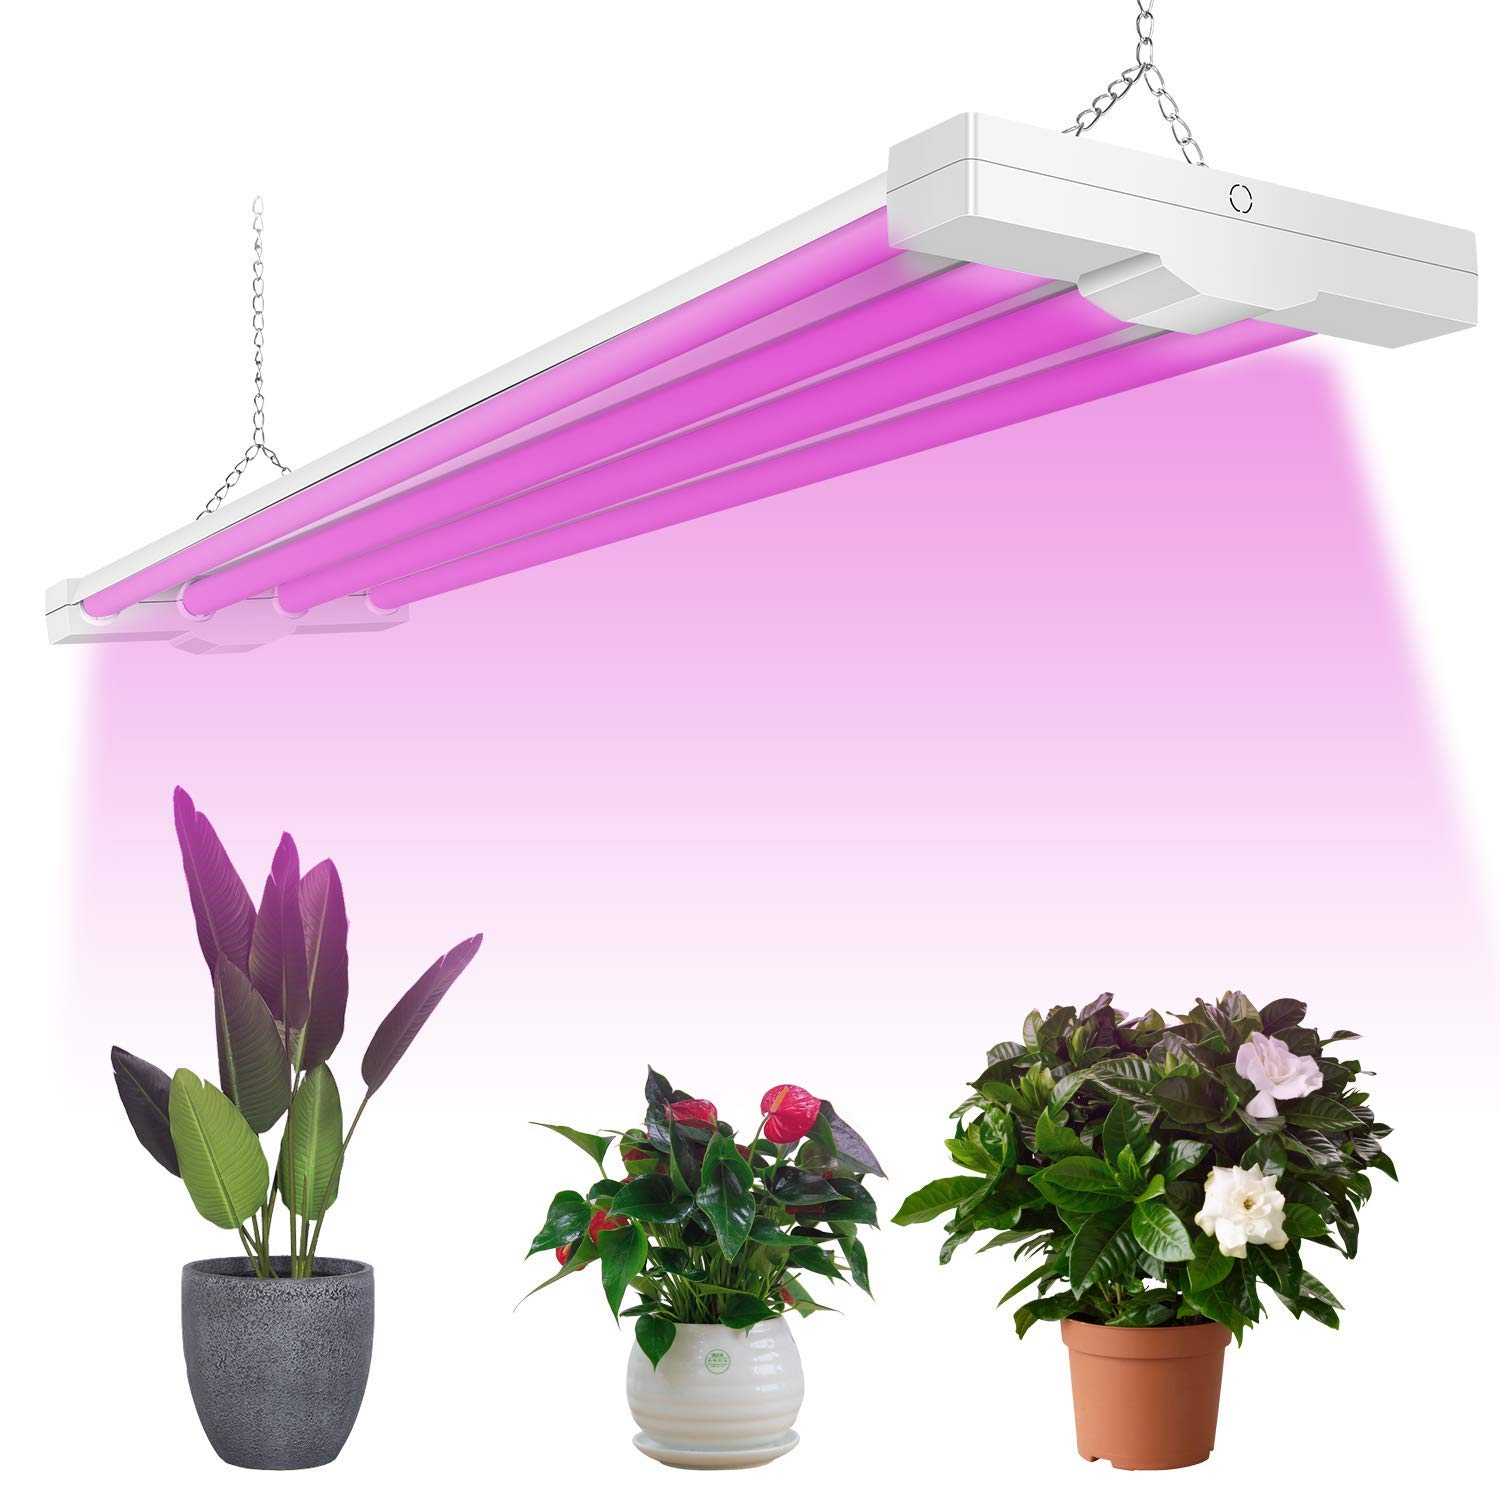 ANTLUX 4ft LED Grow Light 80W (600W Equivalent) Full Spectrum Integrated Growing Lamp Fixture for Greenhouse Hydroponic Indoor Plant Seedling Veg and Flower, Plug in with on/Off Switch by ANTLUX